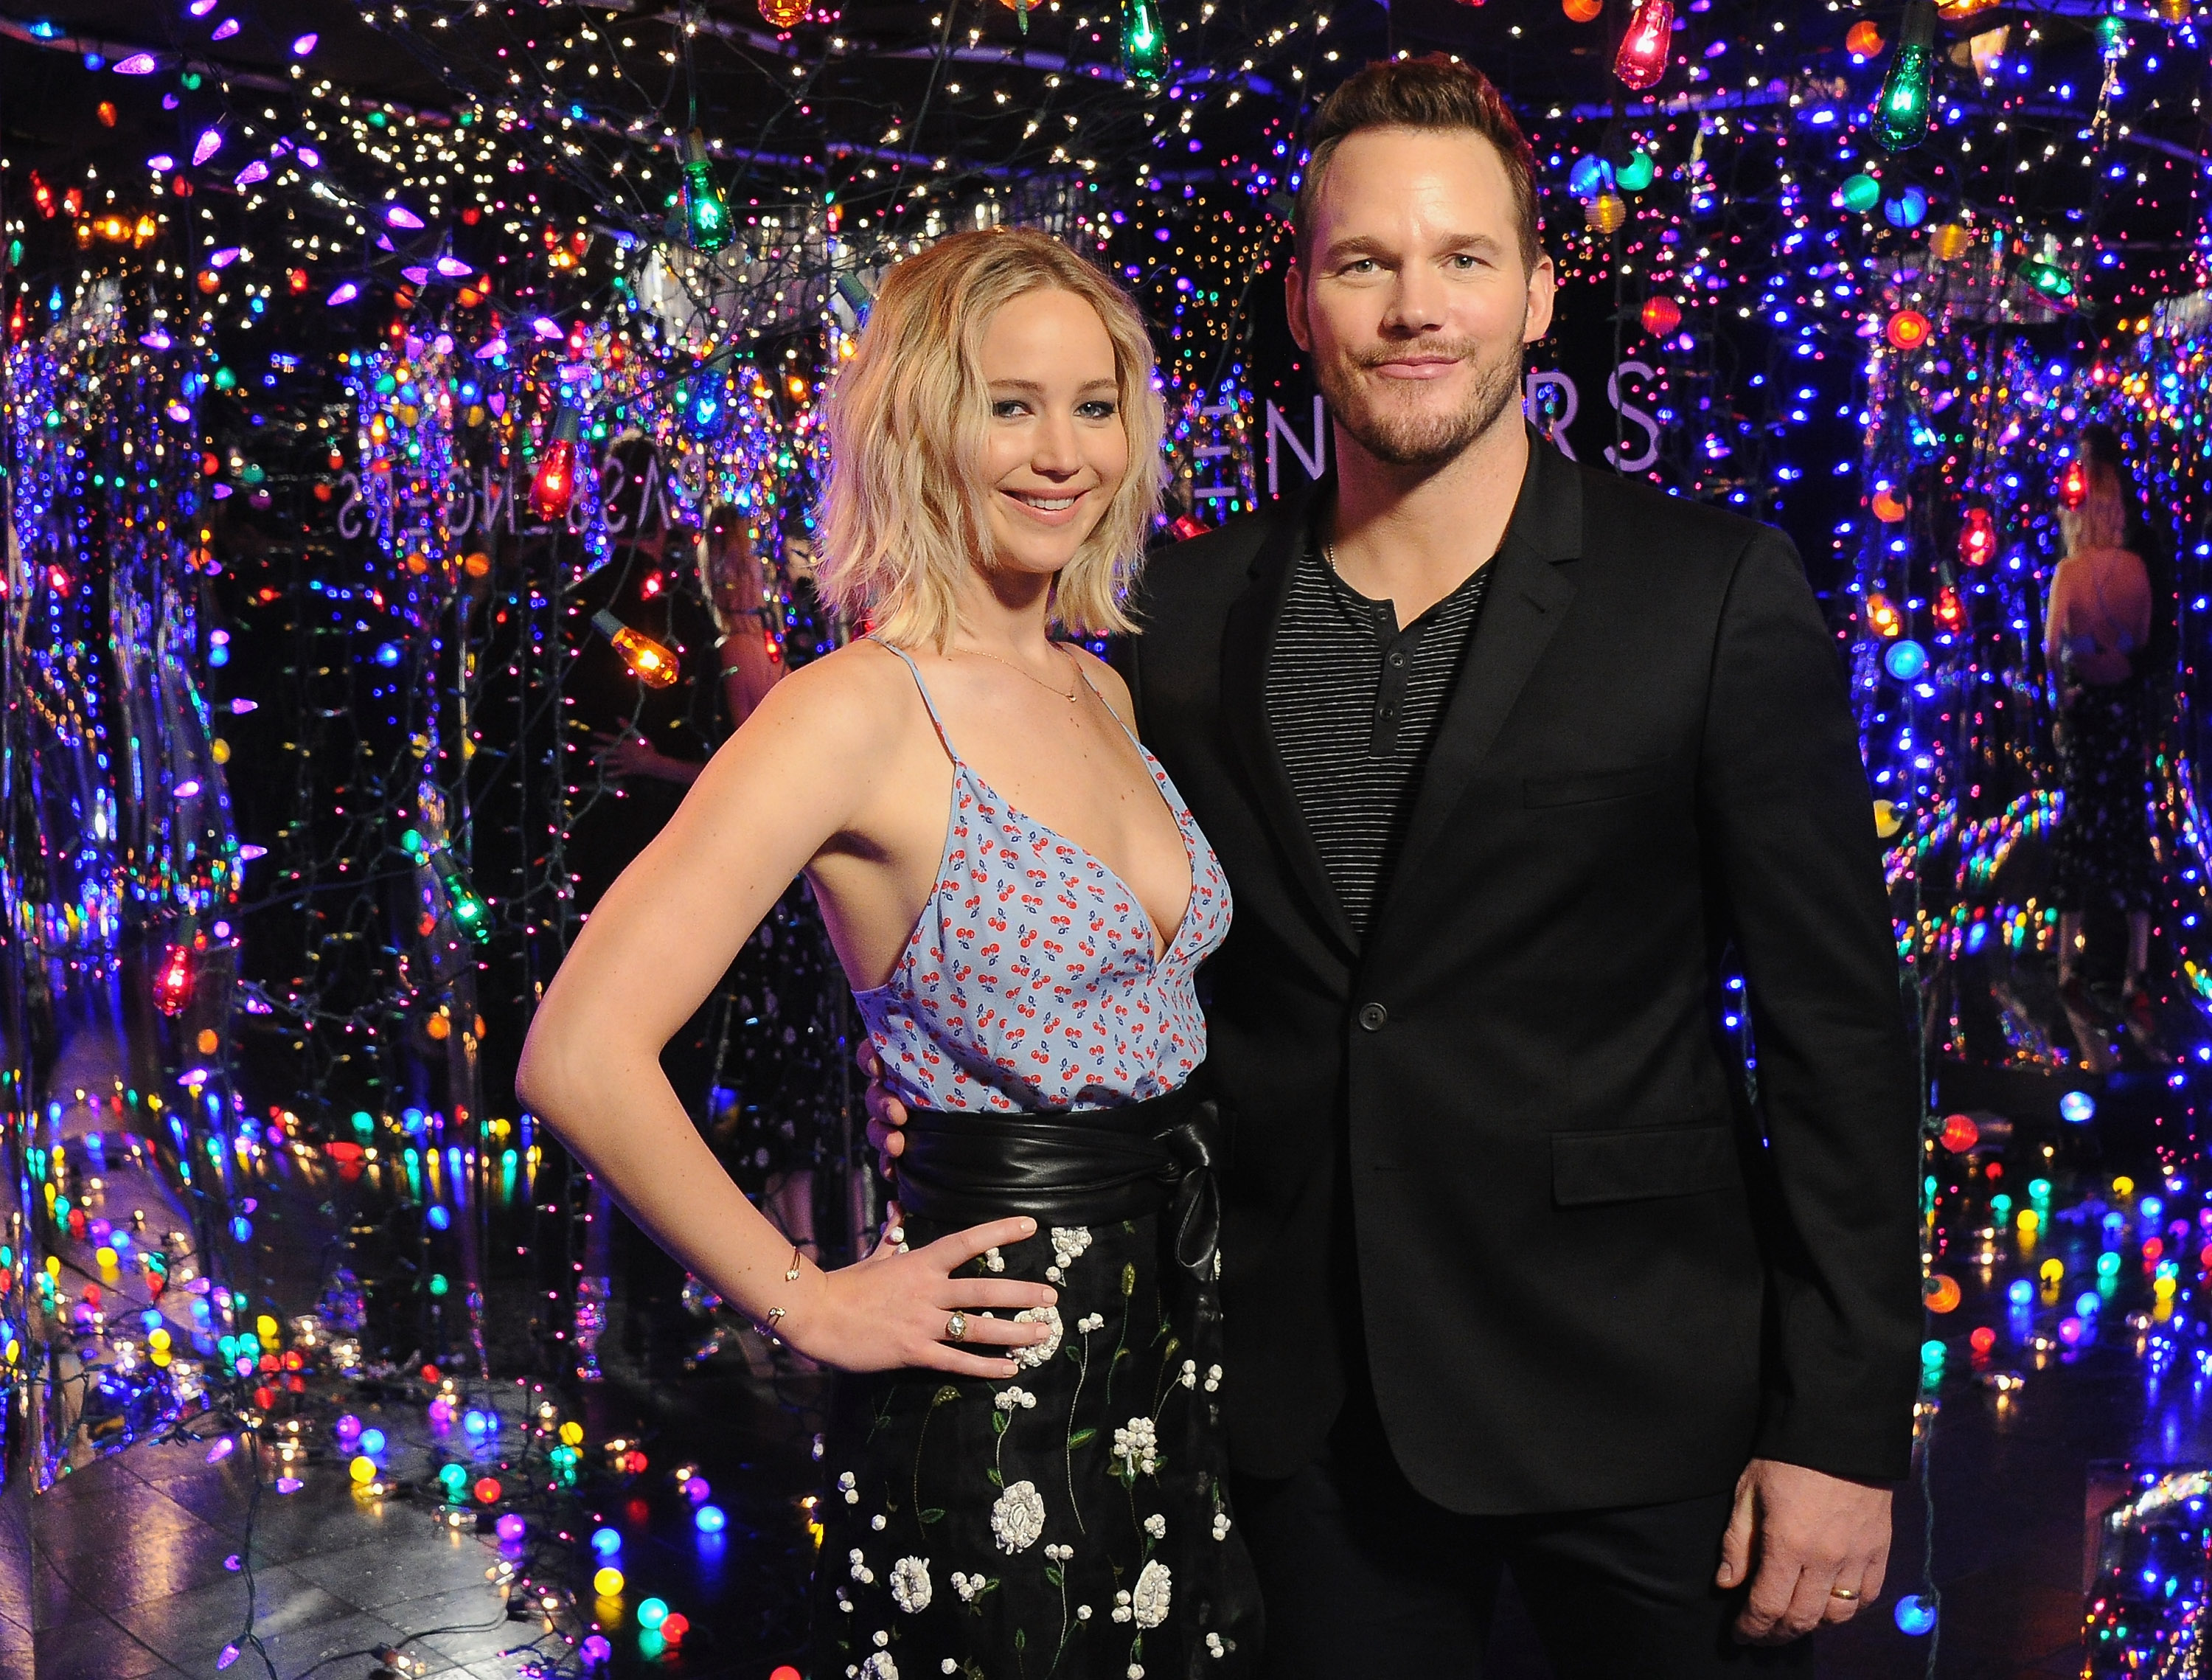 Jennifer Lawrence and Chris Pratt trade insults, and honestly, it's adorable